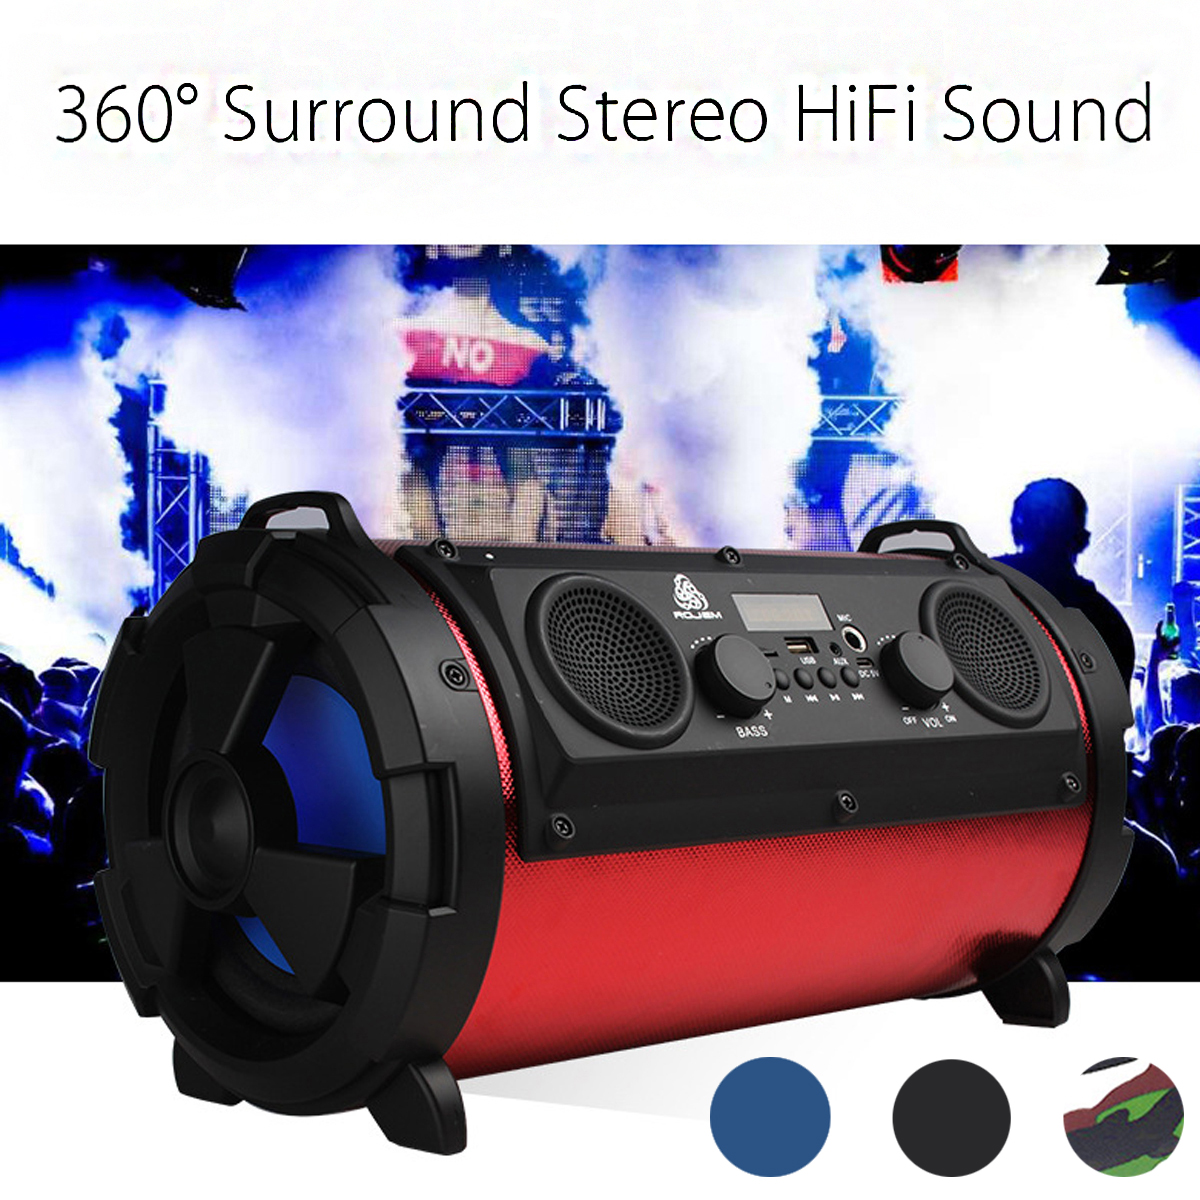 Portable Wireless Bluetooth Speaker Subwoofer With Mic Super Bass Woofer HIFI Outdoor Camping Stereo Loundspeaker outdoor portable bluetooth speaker wireless waterproof bass loud speaker 3d hifi stereo subwoofer support tf card fm radio